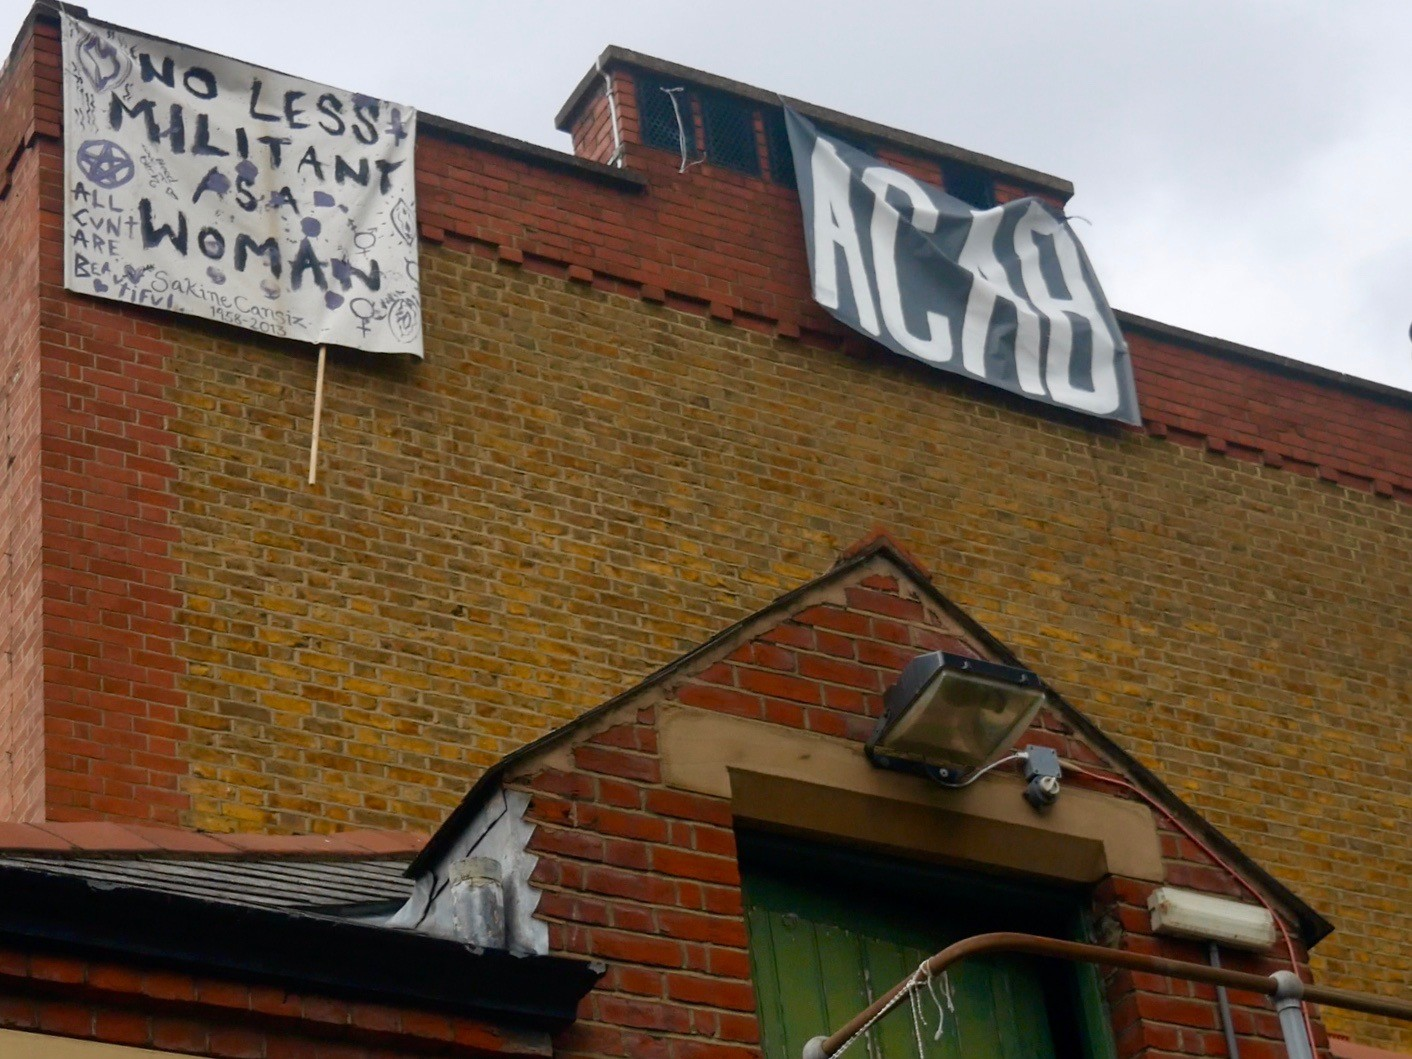 Antifa occupies an abandoned police station on Cavendish Road in Clapham in London, March 25, 2021. Kurt Zindulka, Breitbart News